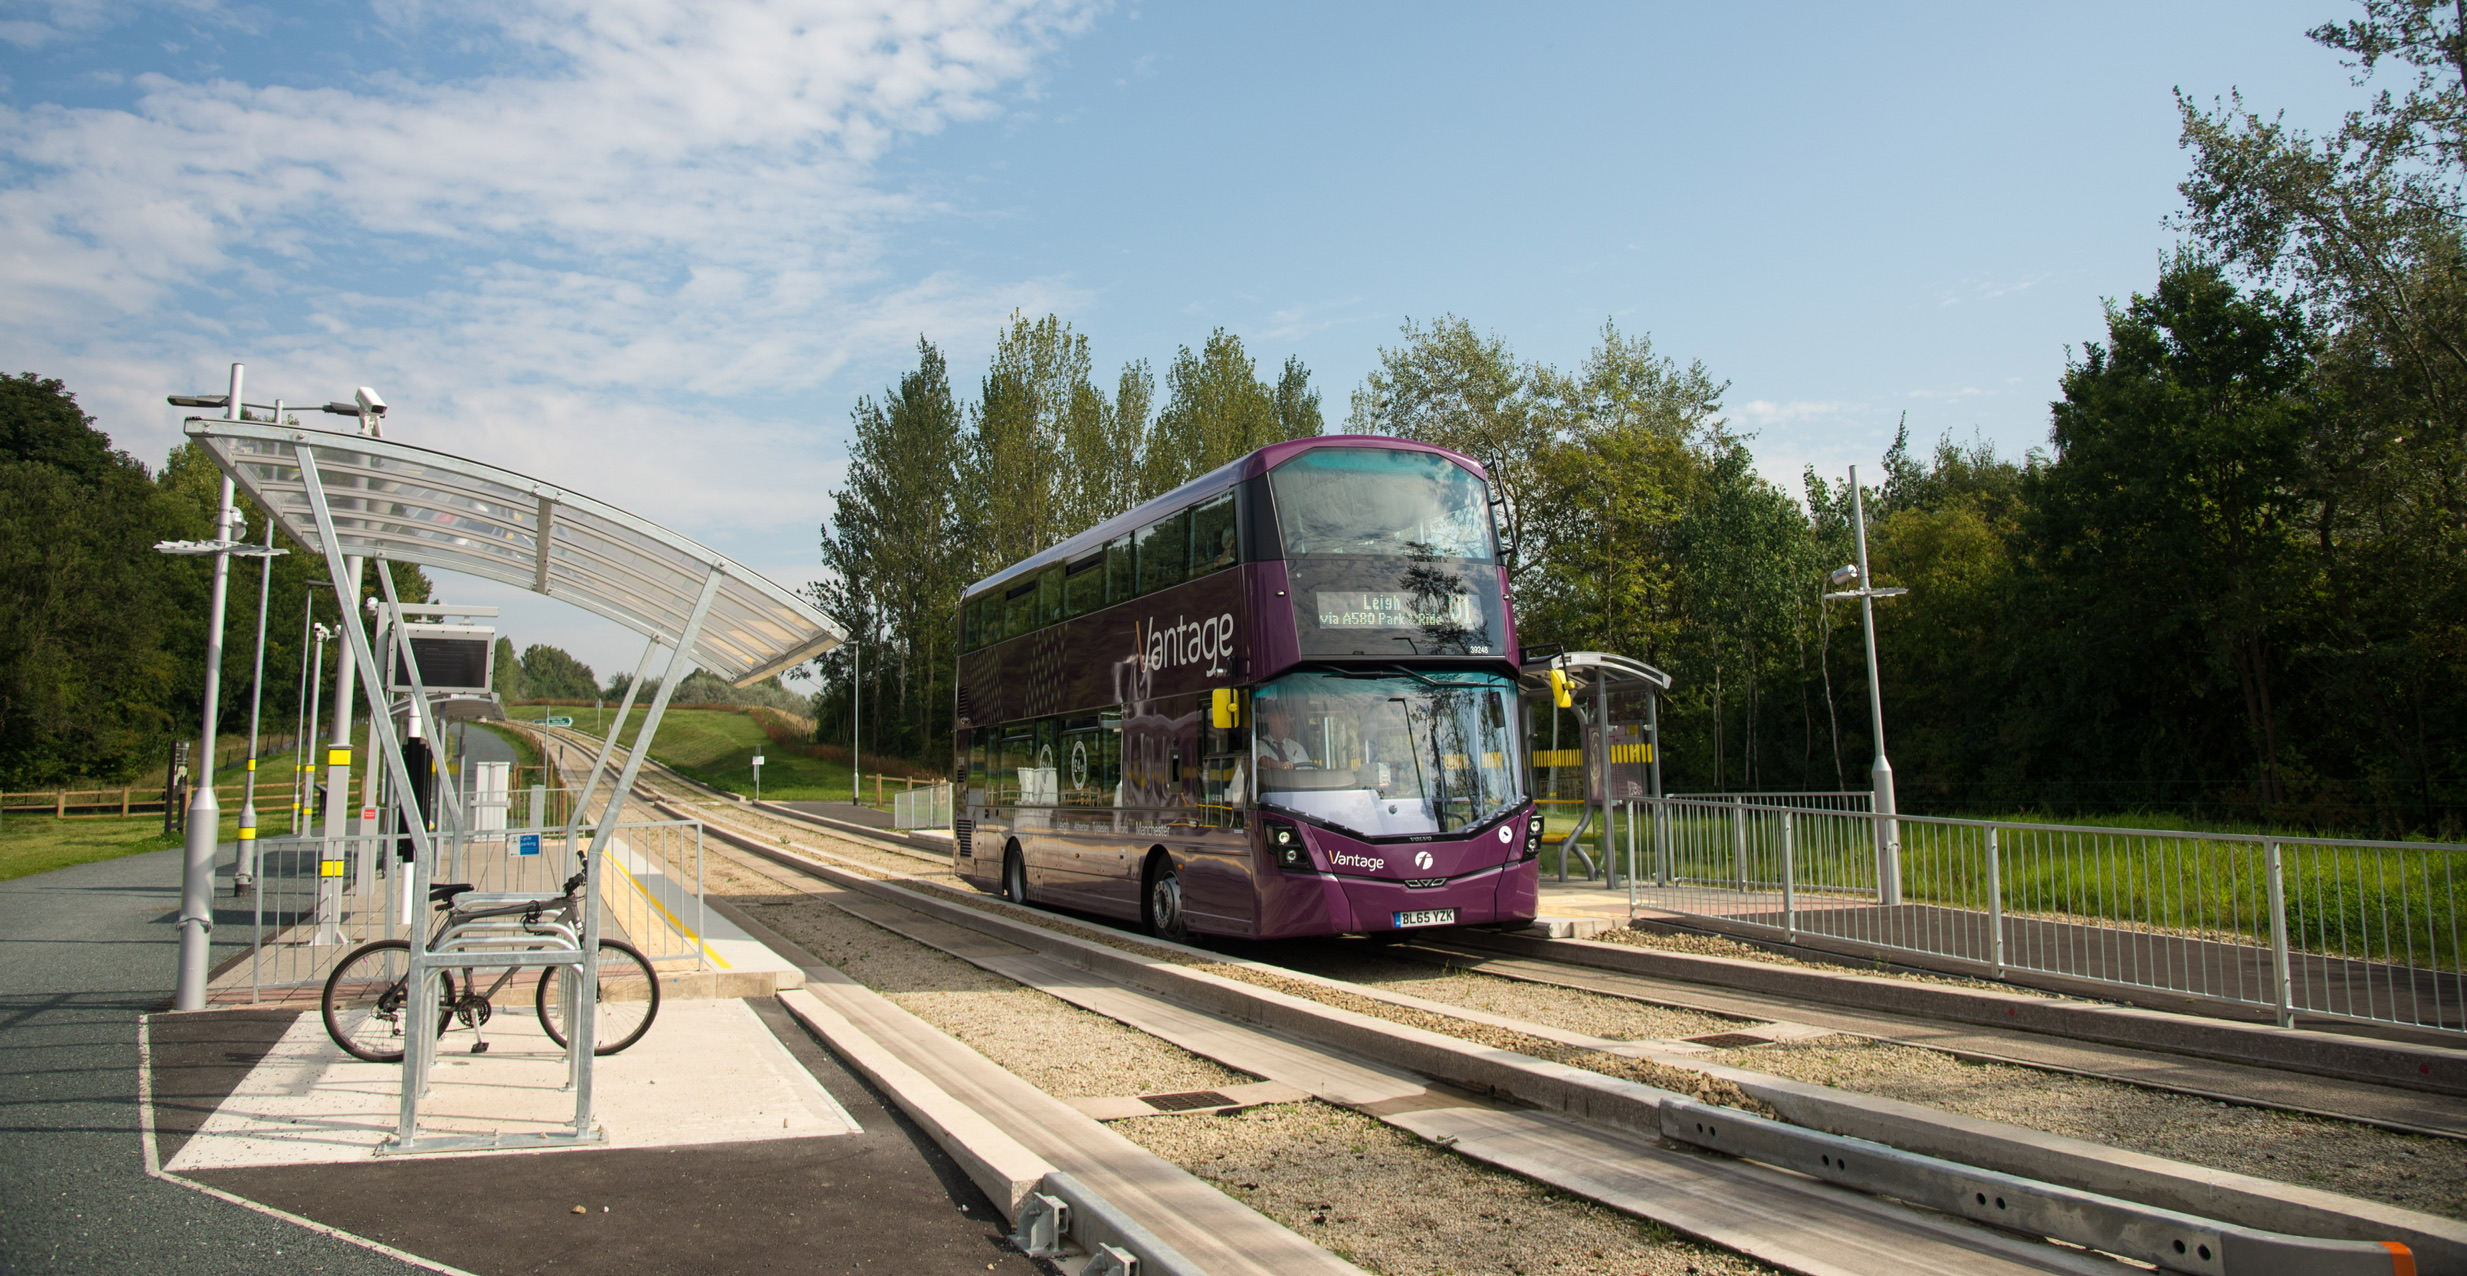 Greater Manchester's Guided busway is tops - About Manchester